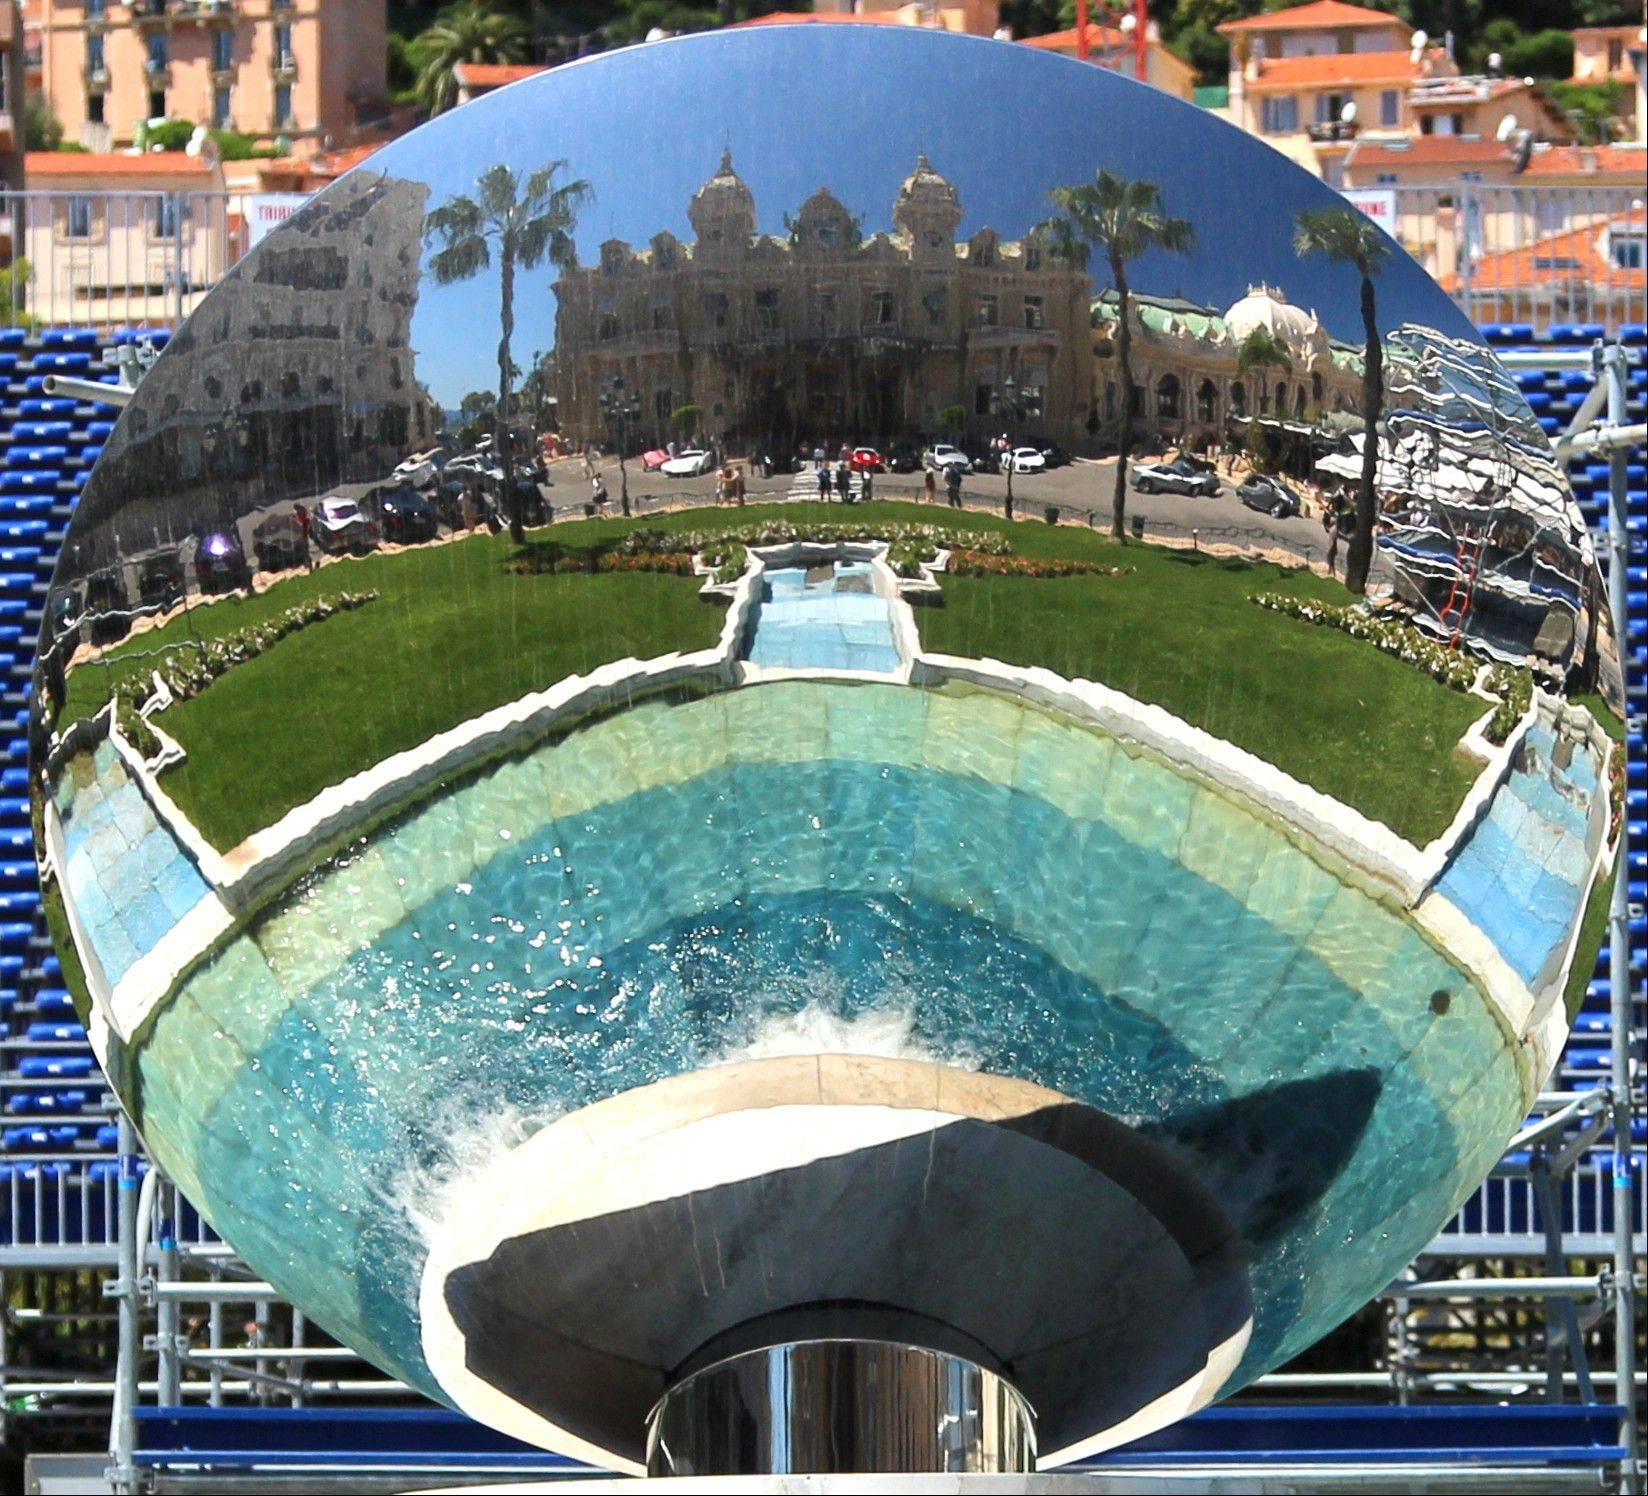 "The sculpture ""Sky Mirror"" faces the Monte Carlo Casino in Monaco. The large circular mirror reflects the building and is one of a number of free things to see in Monaco."